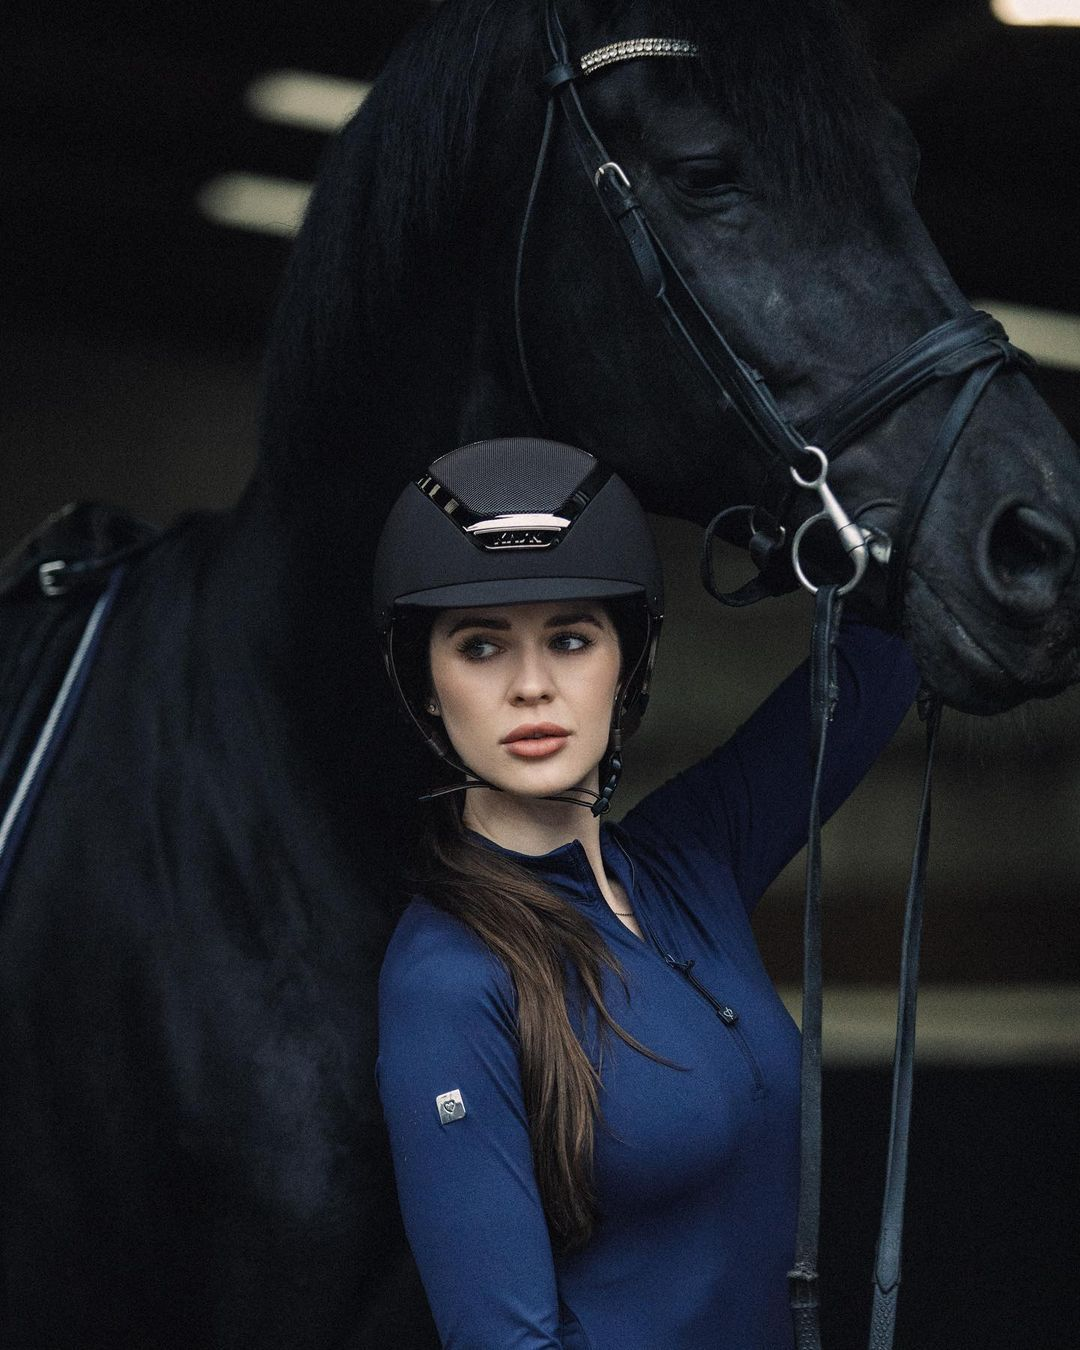 Erin Williams S Instagram Profile Post Soooo Excited To Share That I M Now Sponsored By Kask Equestrian Erin Williams Horseriding Outfit Riding Outfit